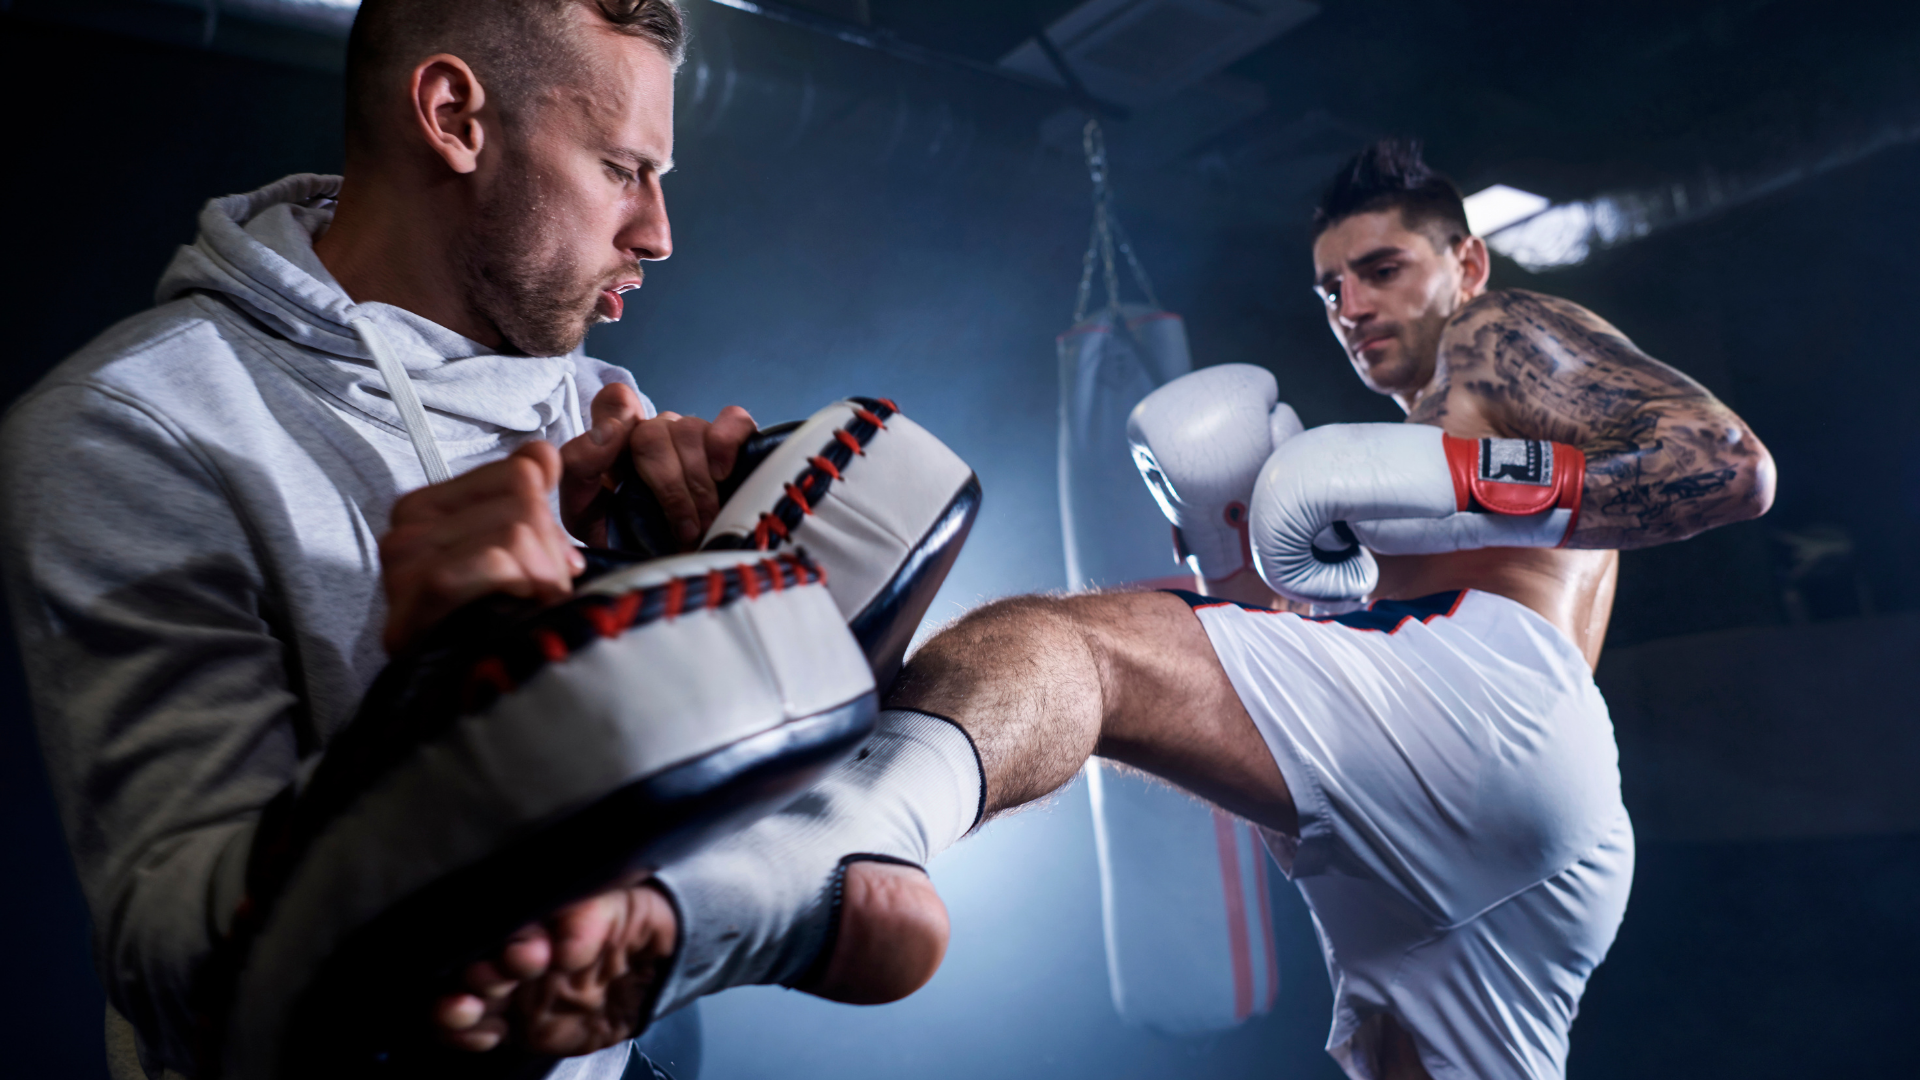 Is Kickboxing Good For MMA